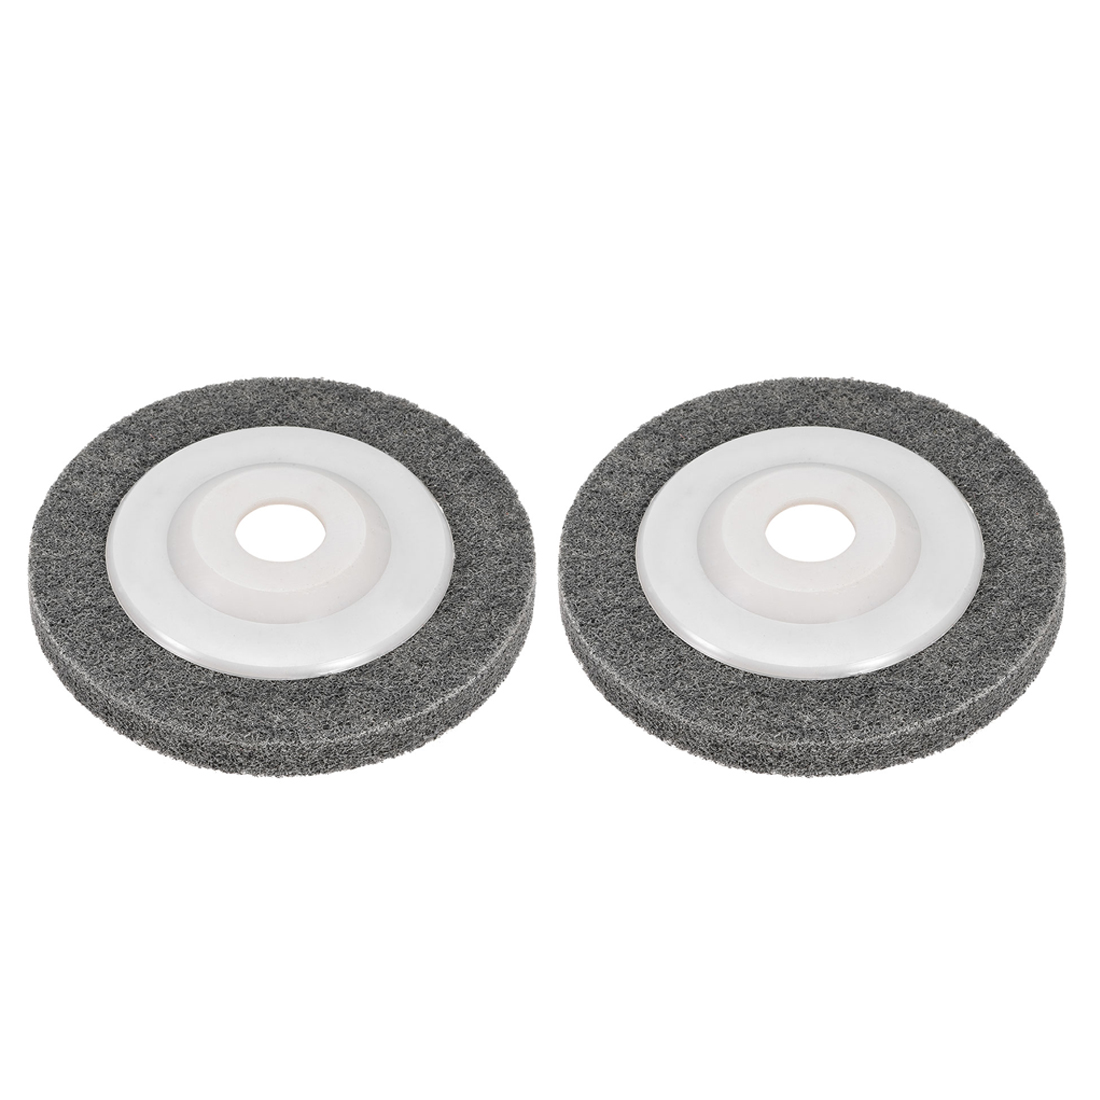 5 Inch Polishing Wheel Buffing Pad Felt Disc for 100 Angle Grinders White 2pcs